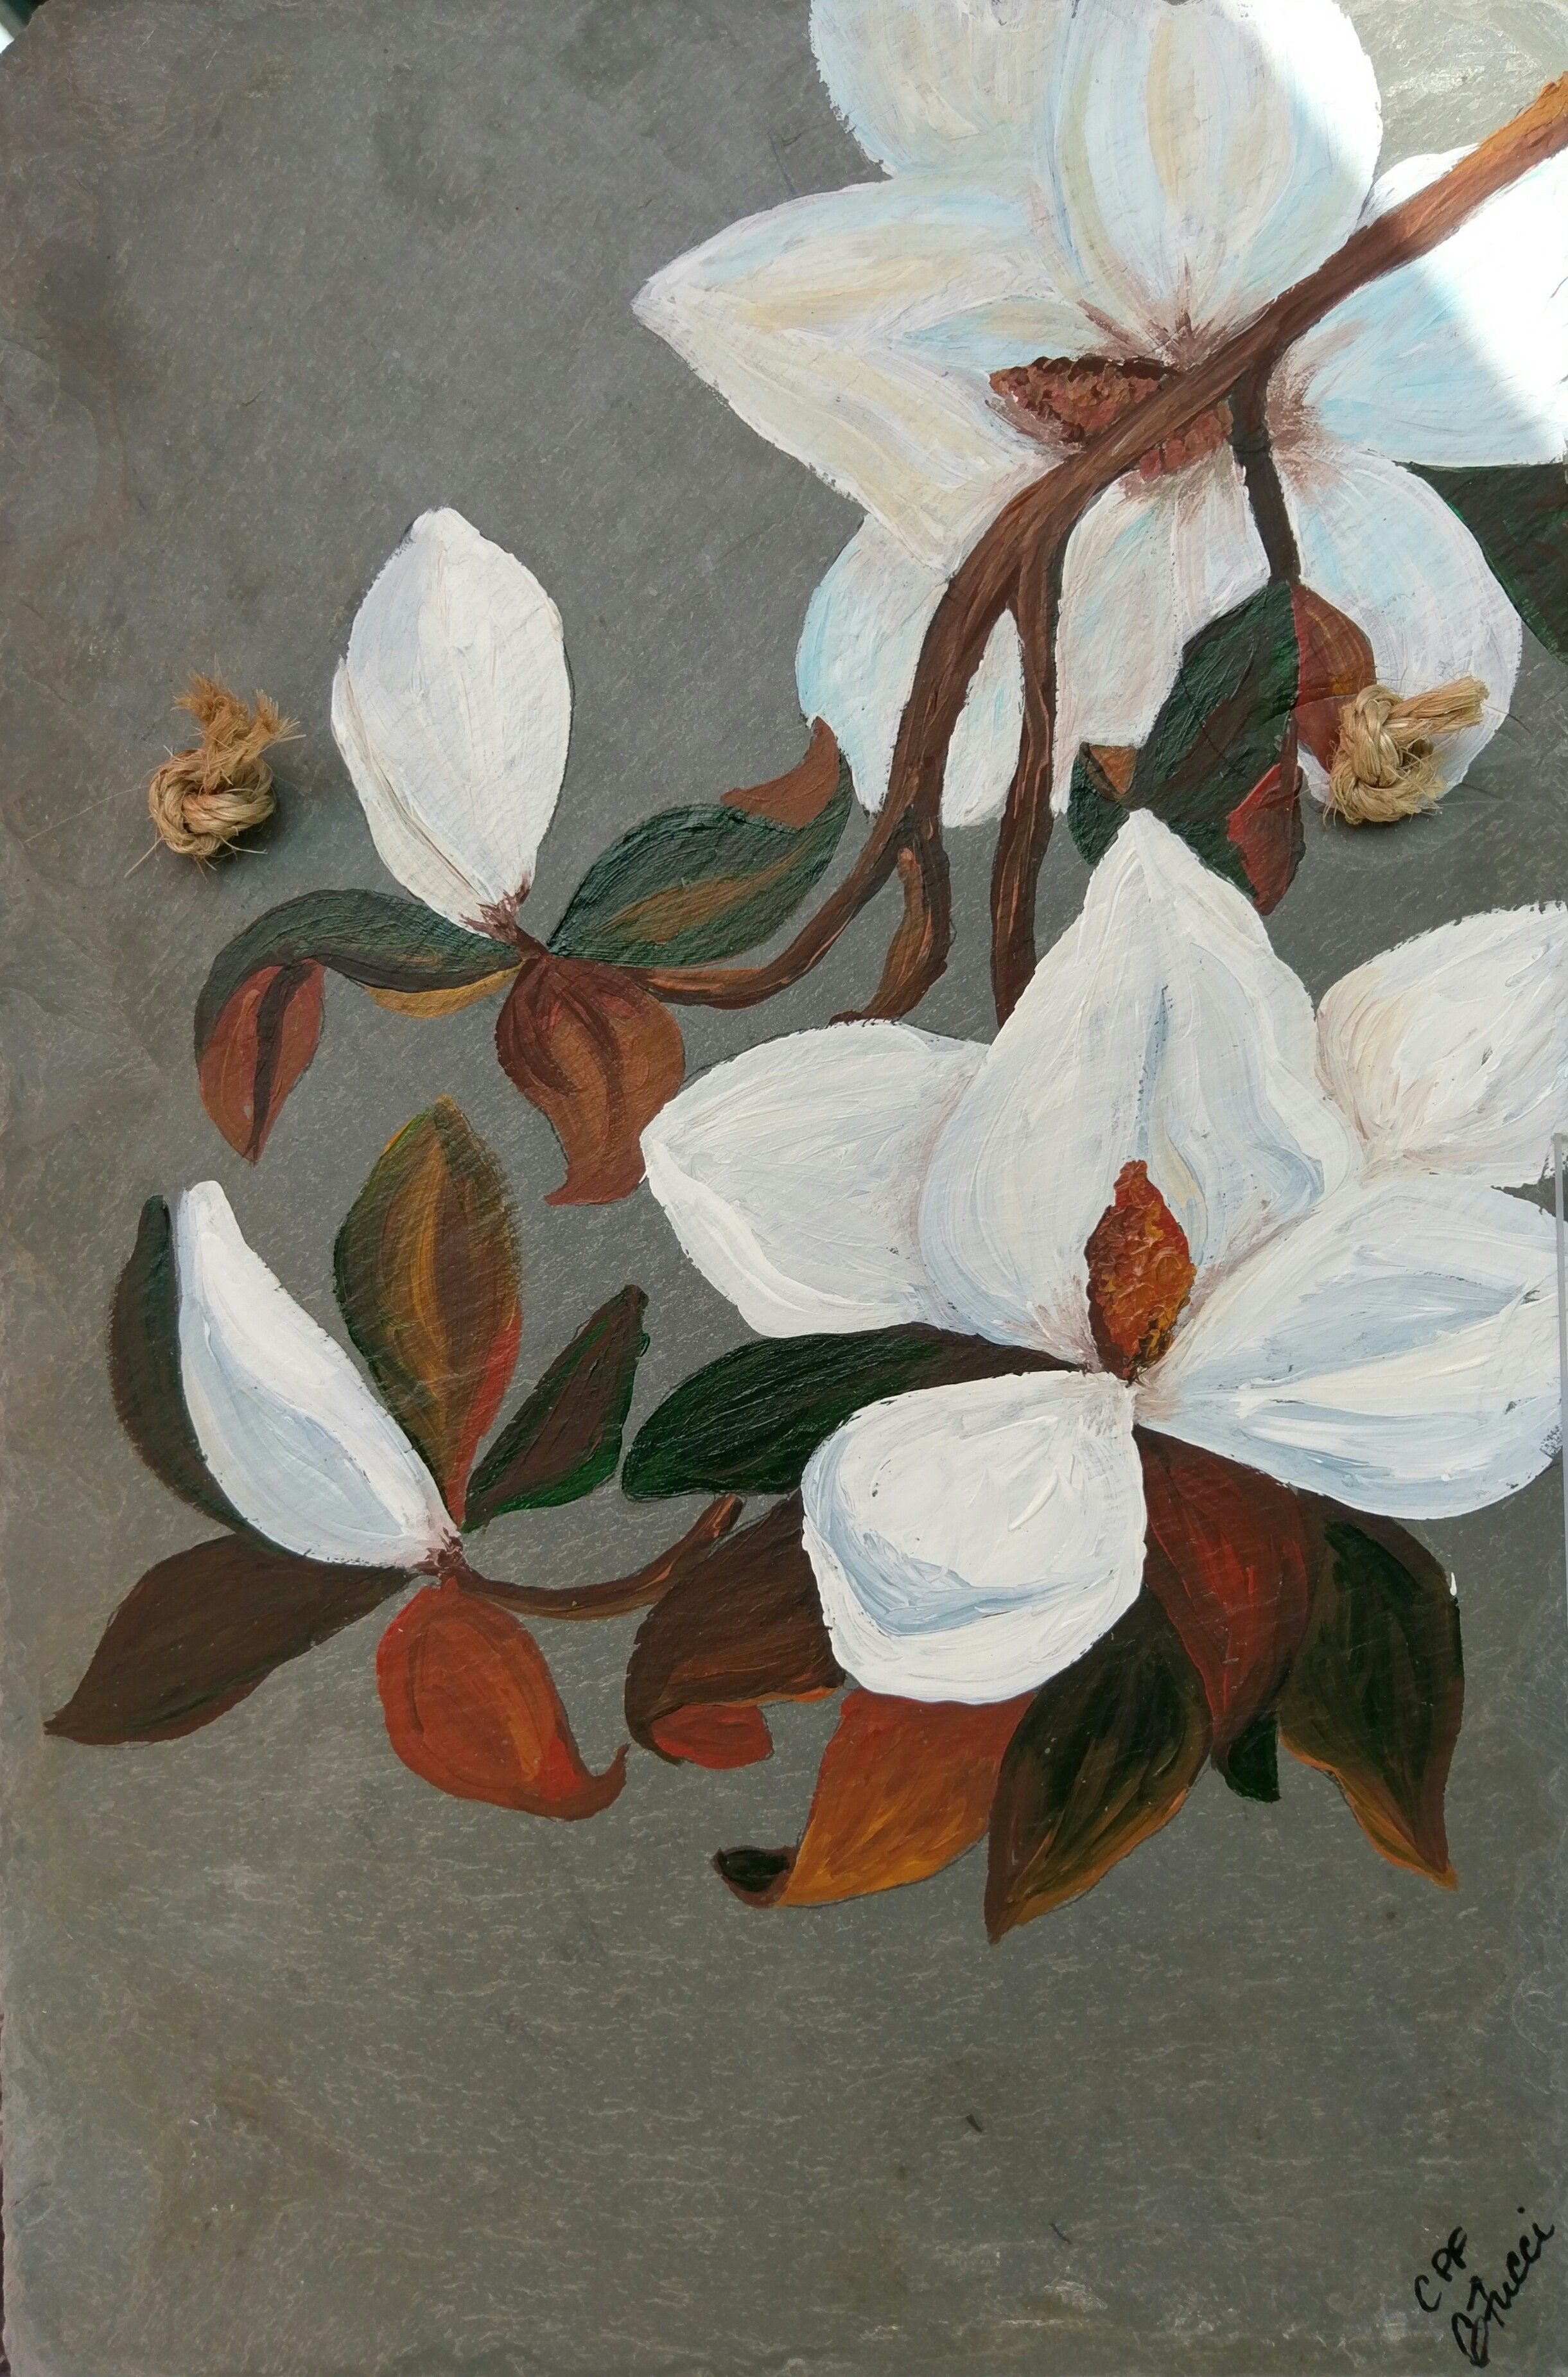 Magnolia Flowers Painted On 100 Plus Year Old Antique Roofing Slate